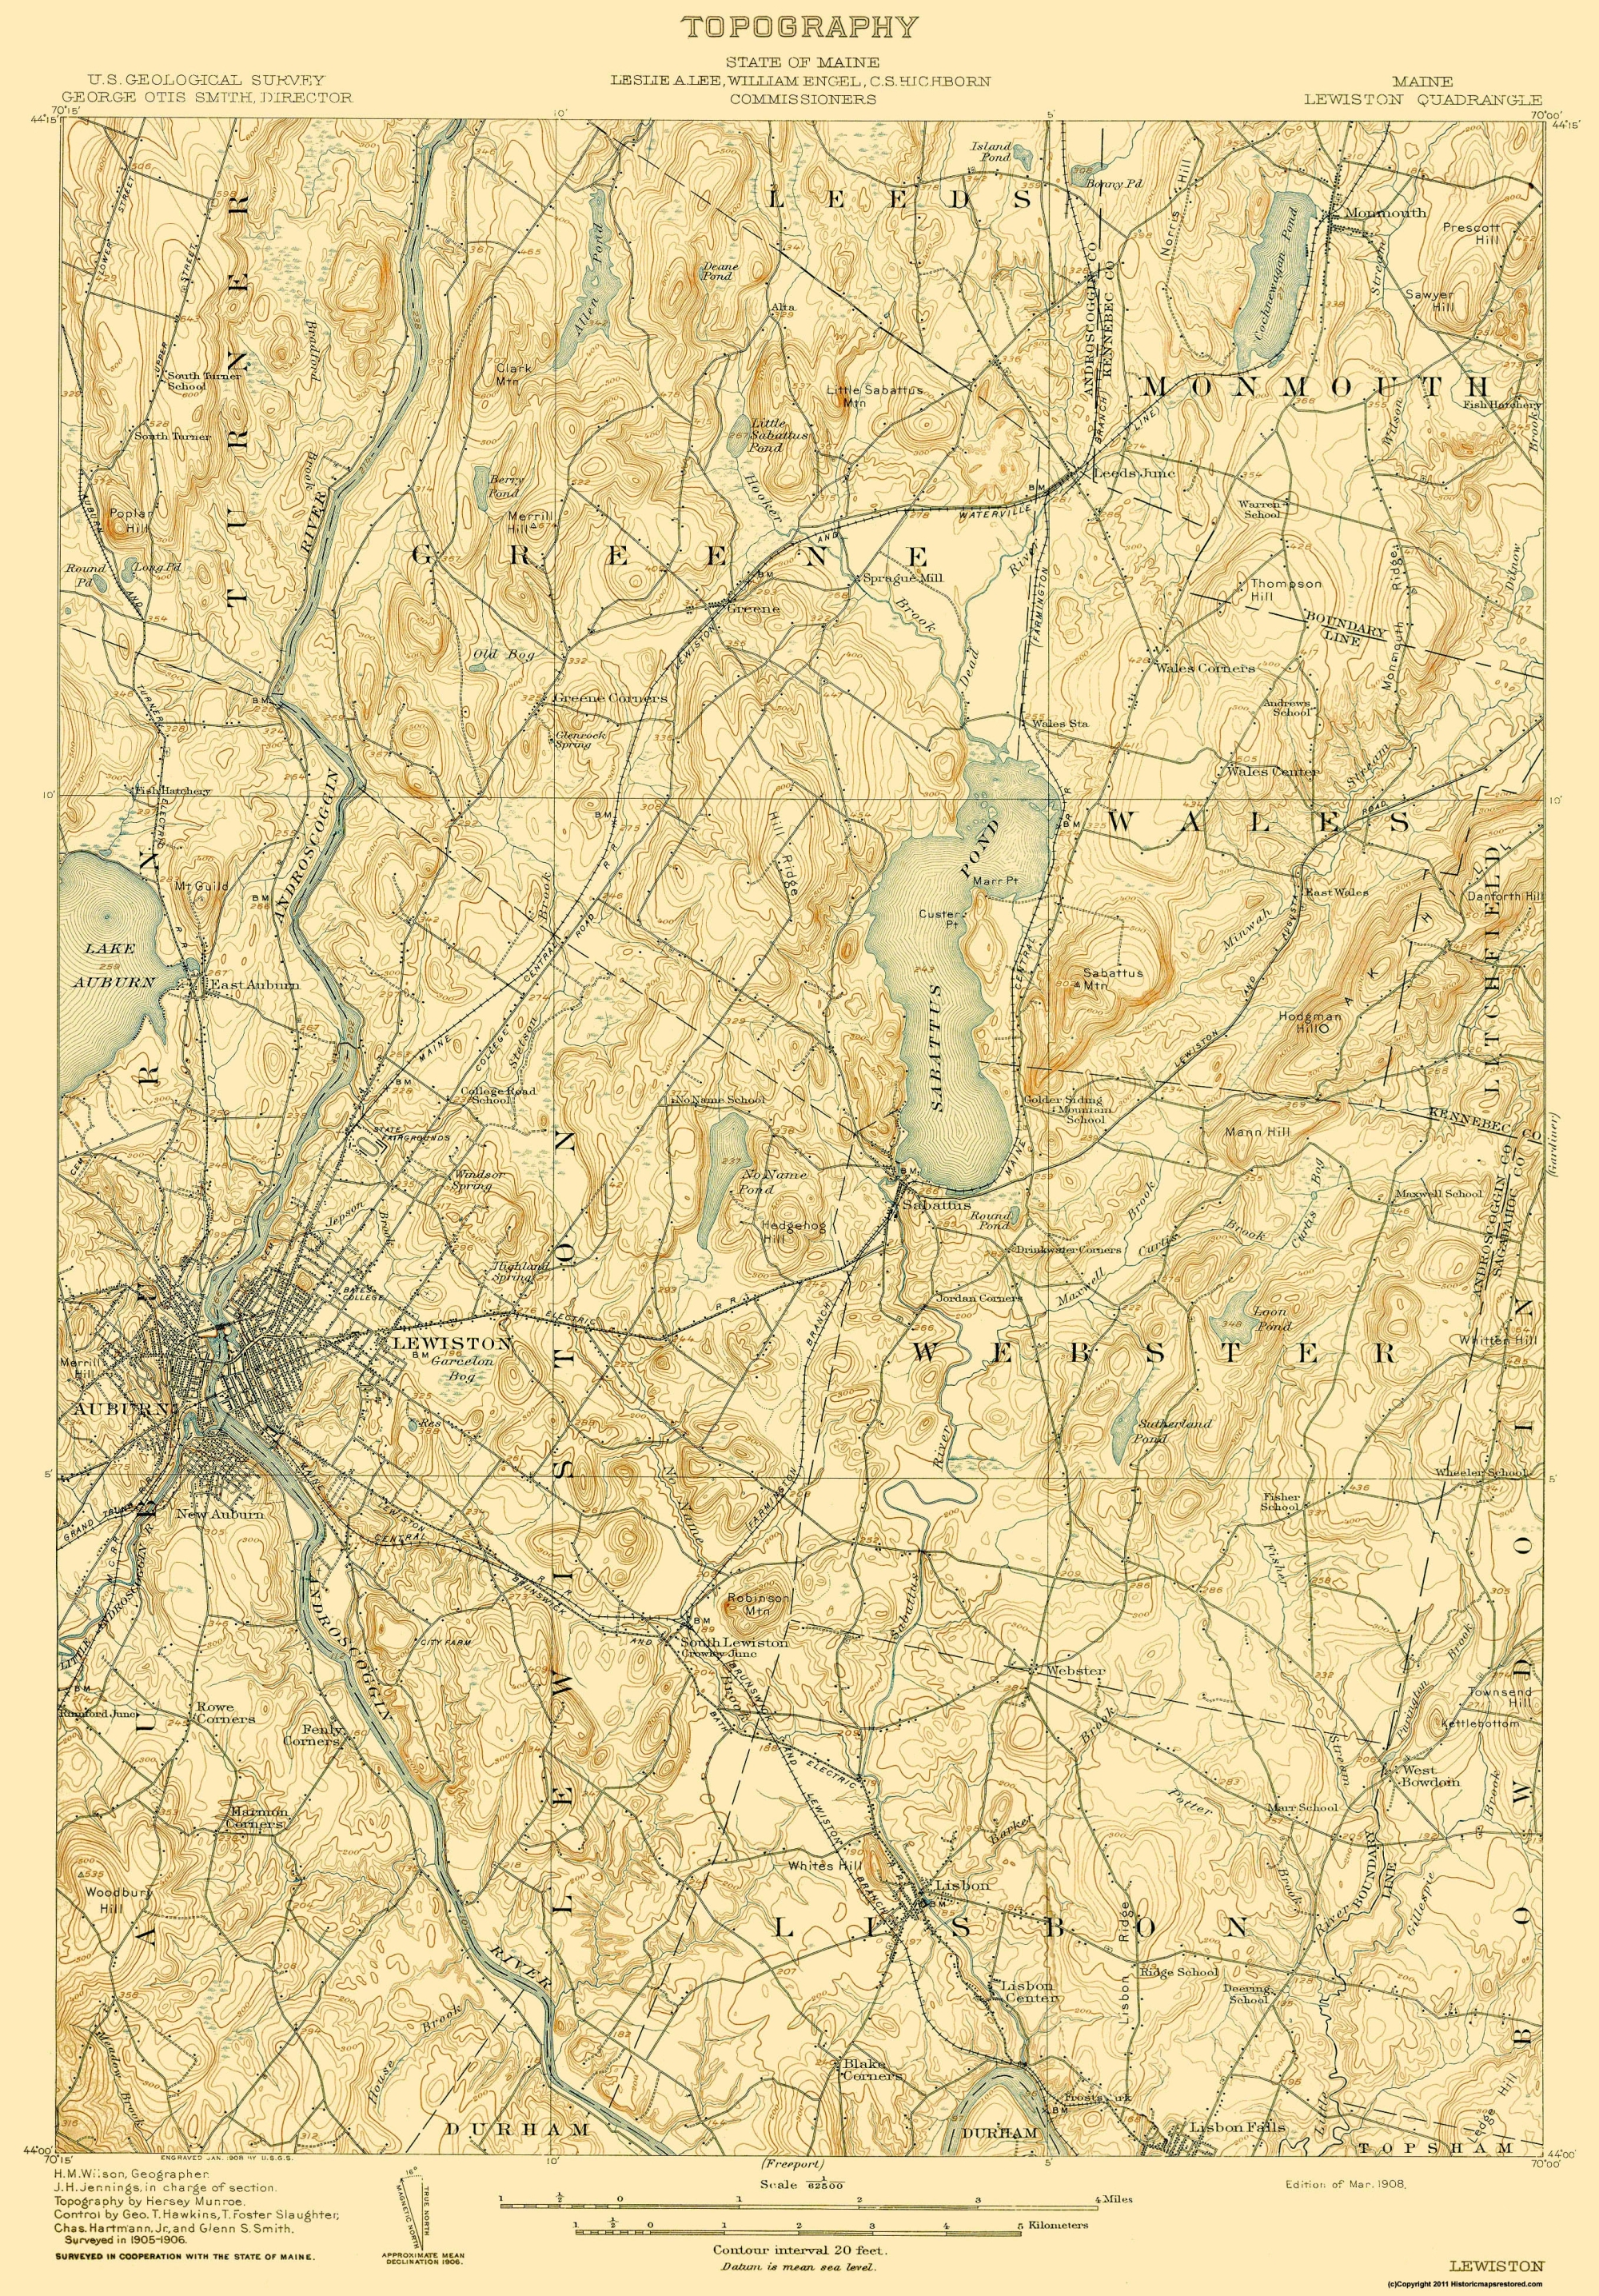 Old Topographical Map Lewiston Maine 1908